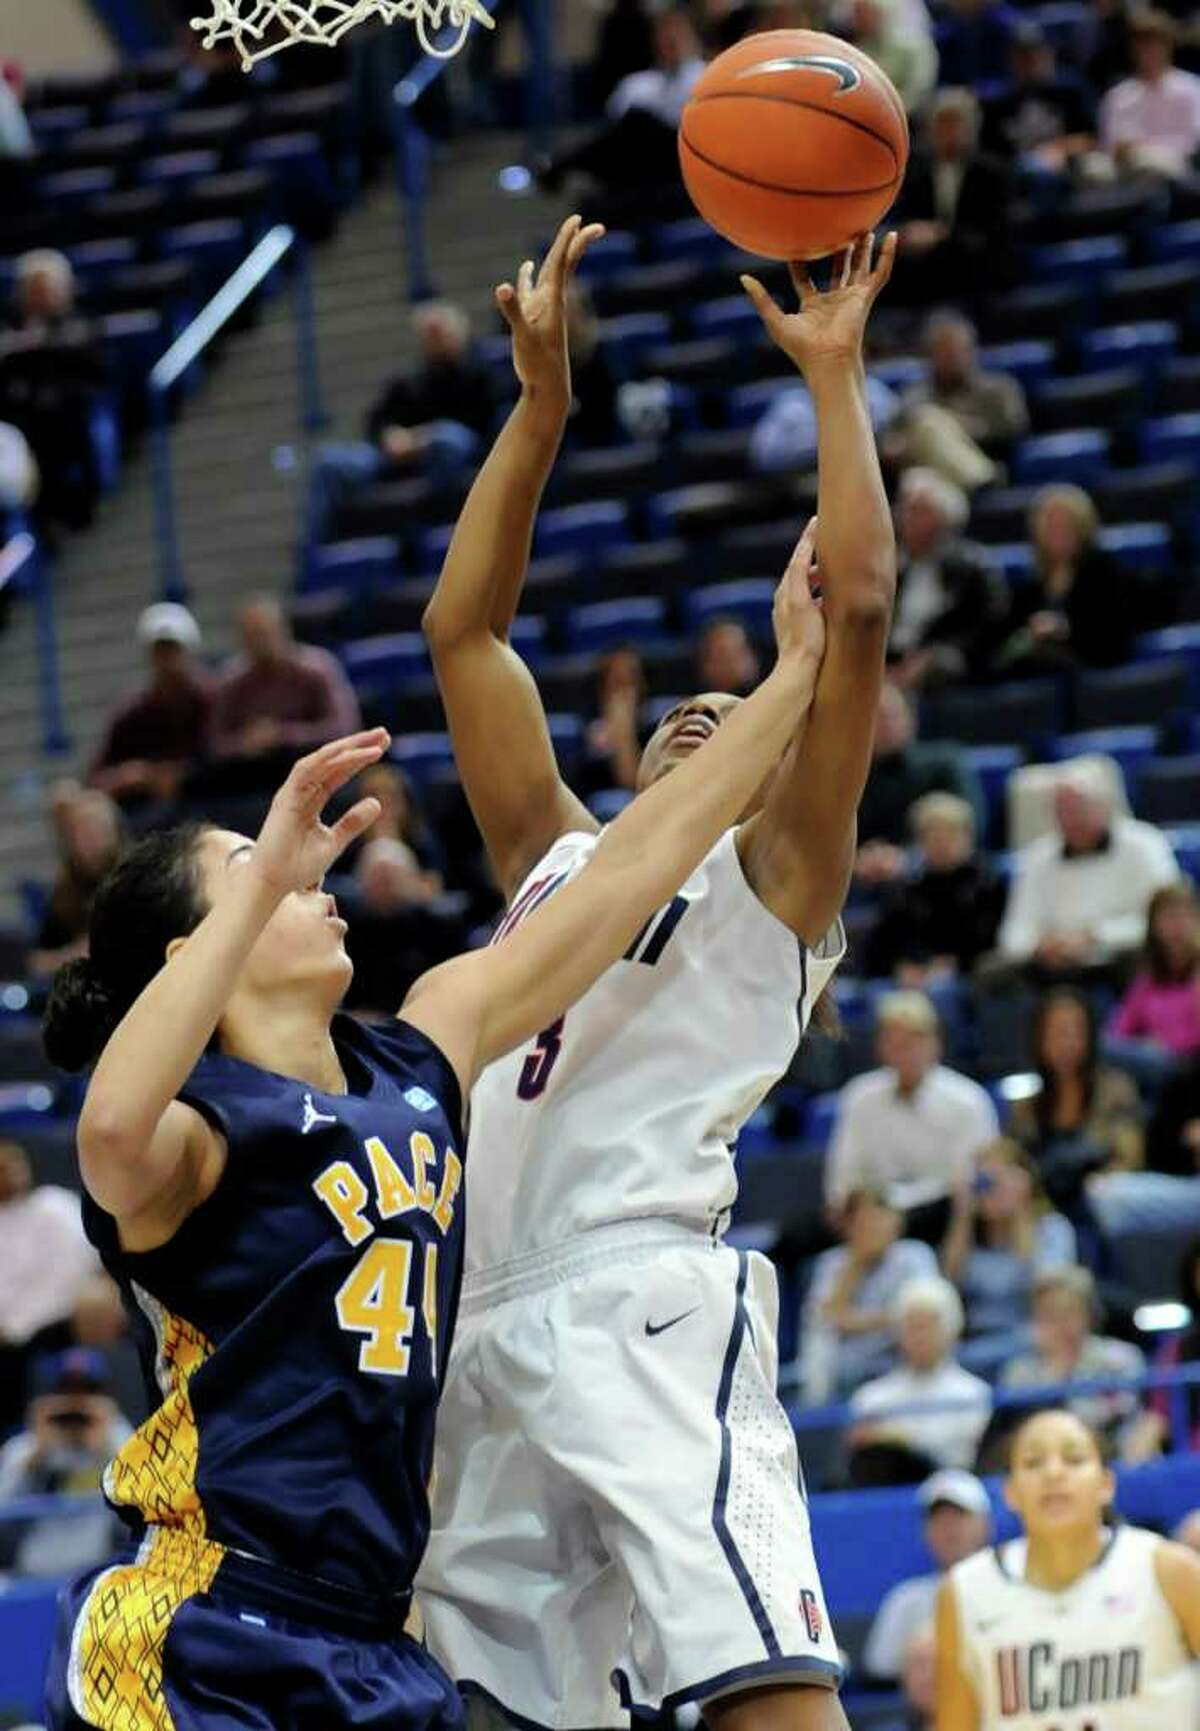 UConn's Tiffany Hayes, right, reaches for a loose ball as Pace's Maral Javadifar defends in the first half of an exhibition game on Wednesday in Hartford.